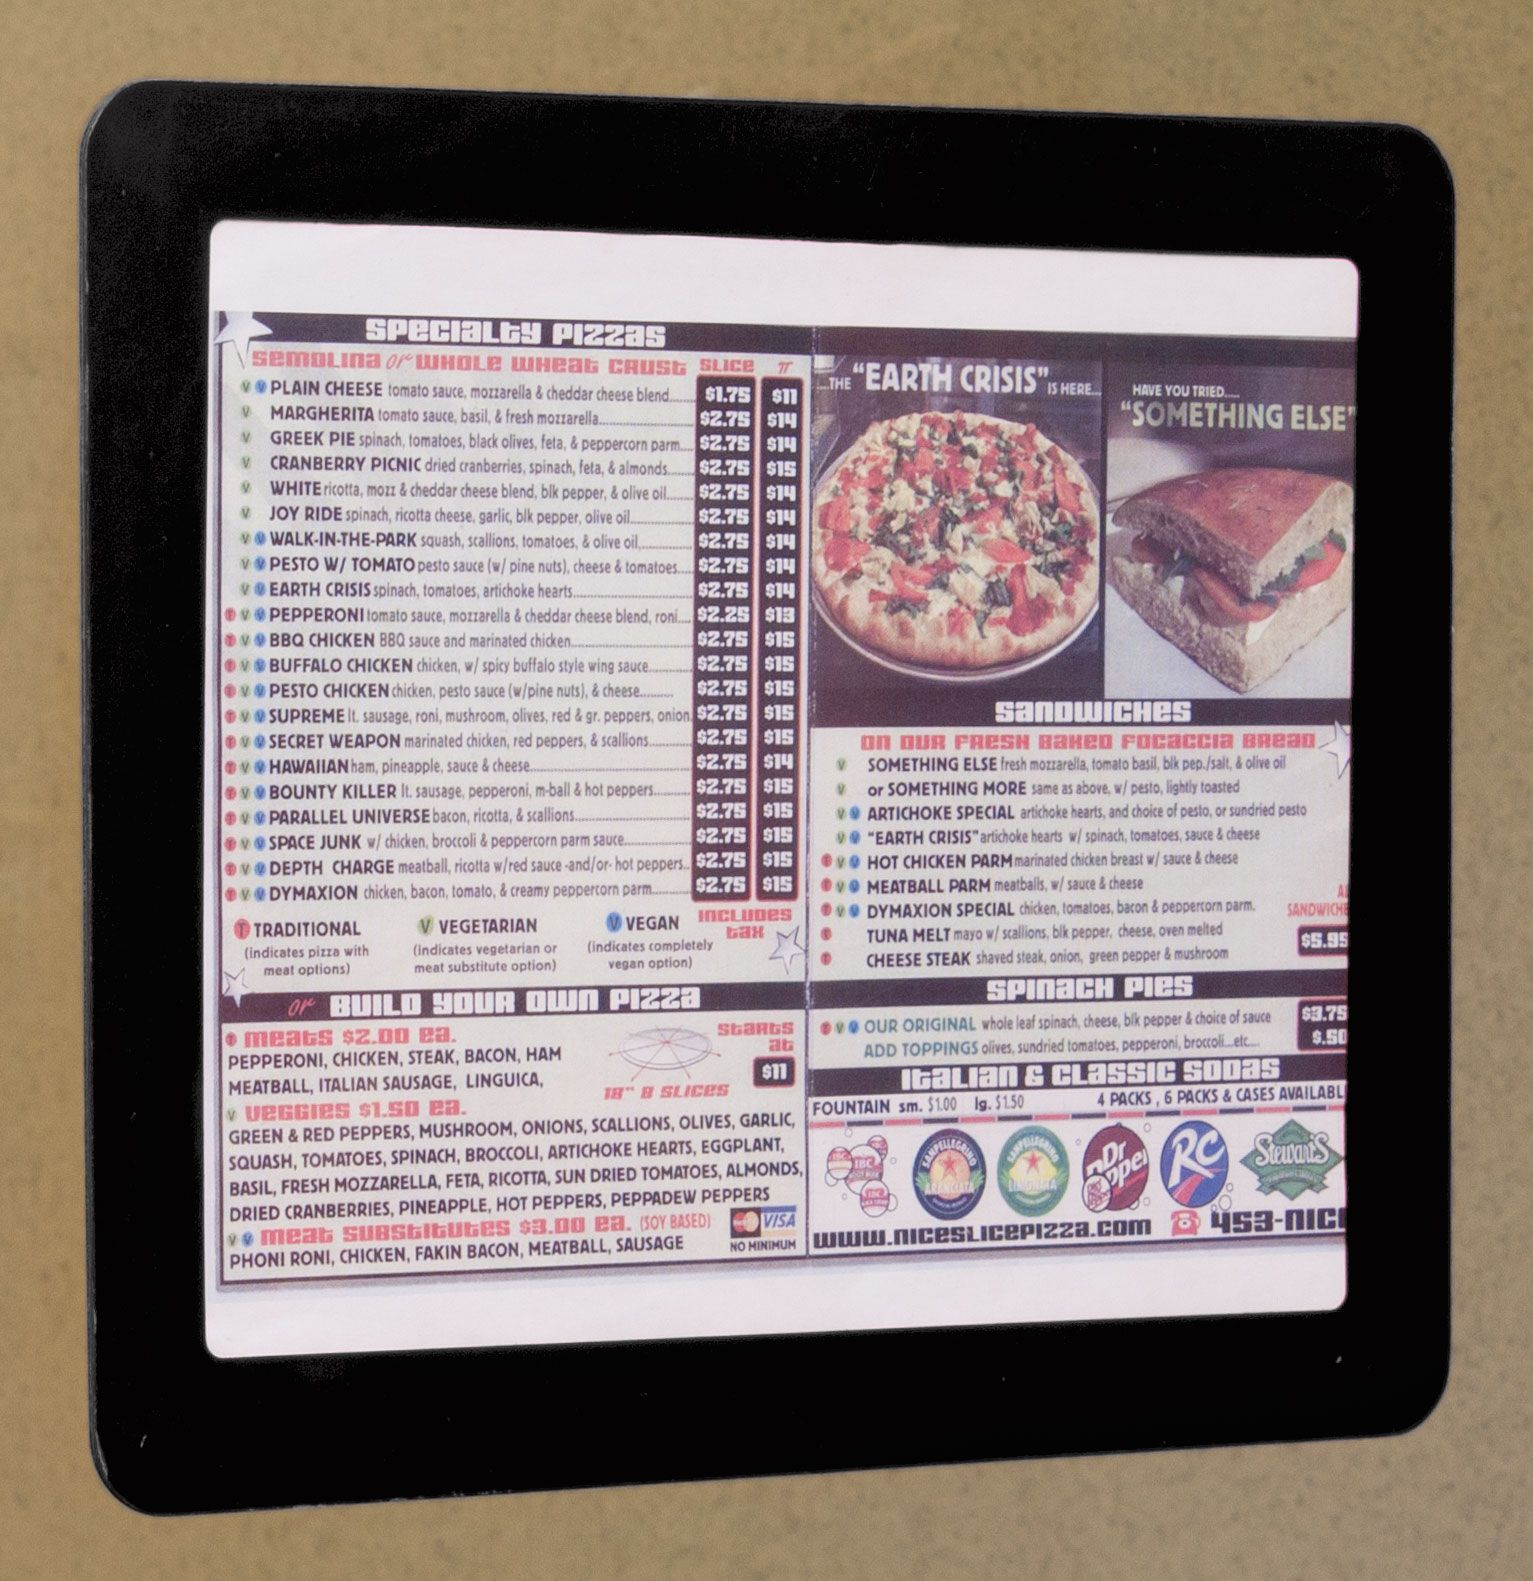 85 X 11 Window Sign Holder With Magnetic Lens Adhesive Dots